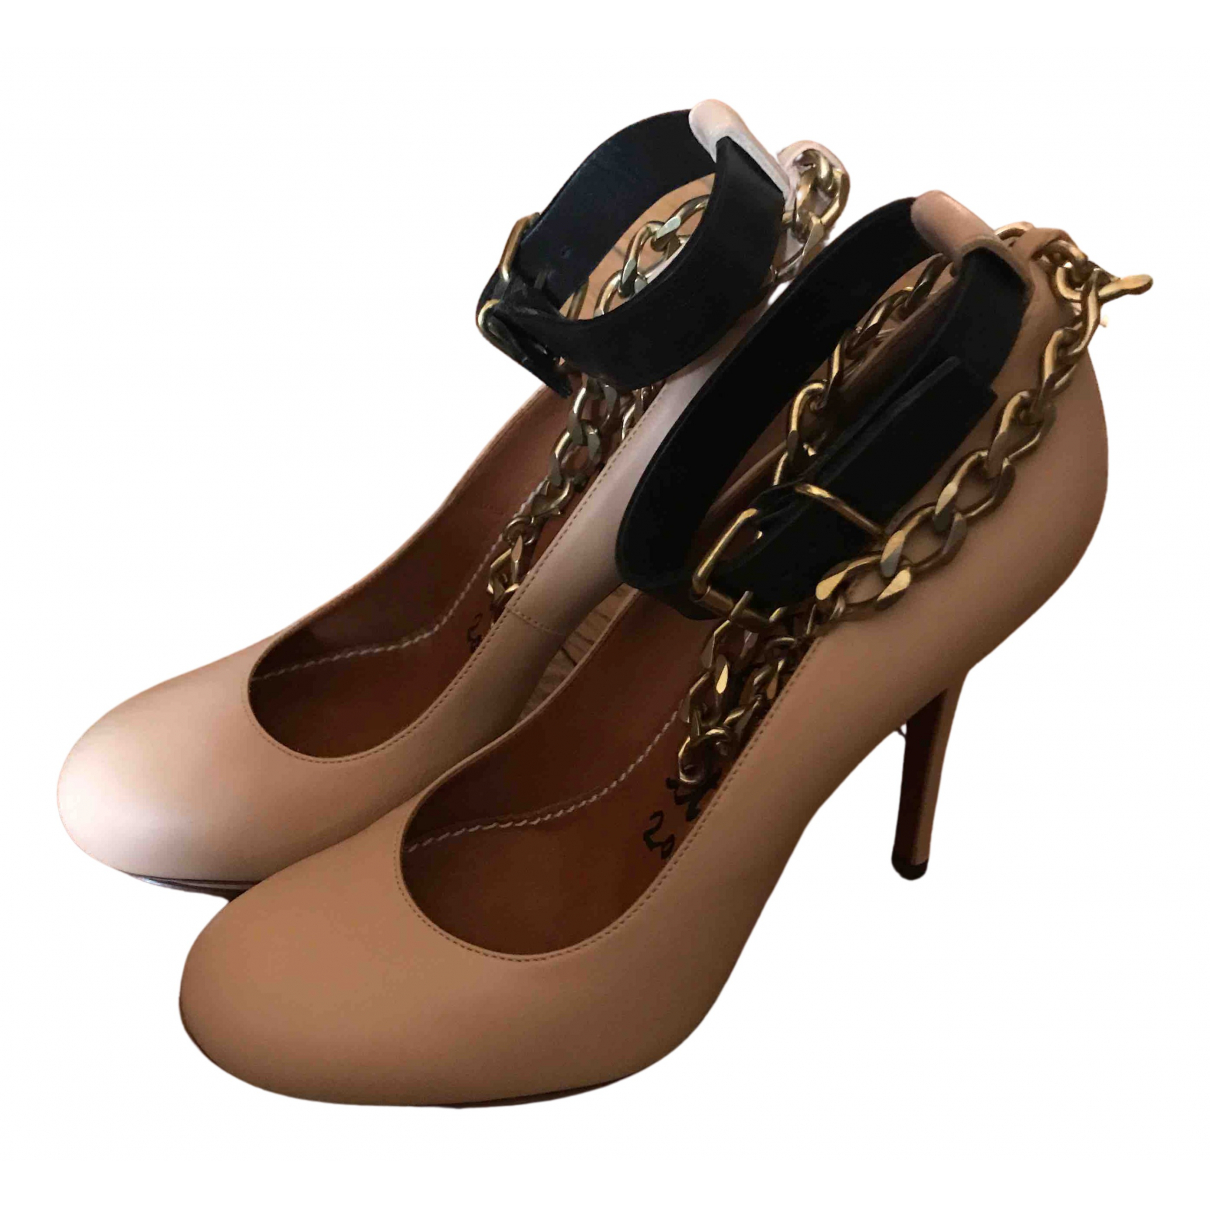 Lanvin N Beige Leather Heels for Women 37.5 EU